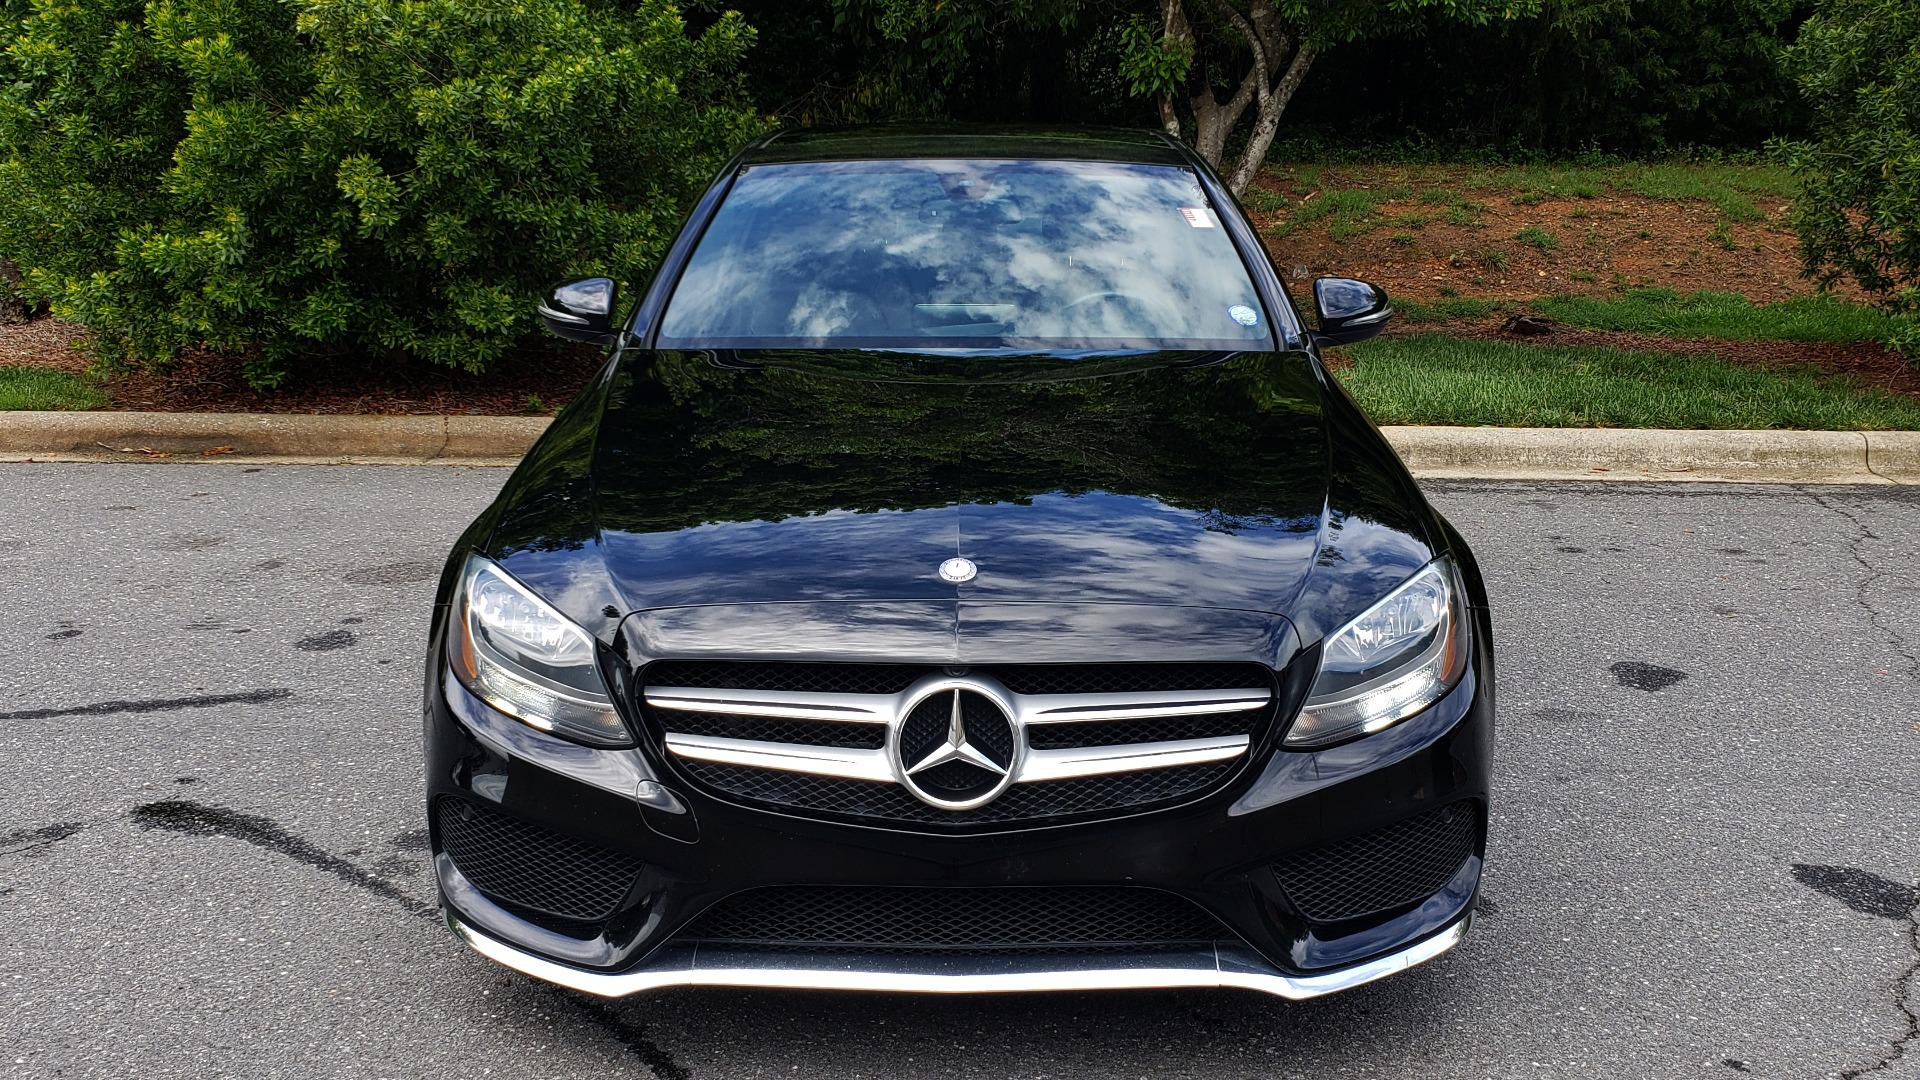 Used 2016 Mercedes-Benz C-CLASS C300 SPORT / PREM PKG / NAV / PANO-ROOF / REARVIEW / KEYLESS-GO for sale Sold at Formula Imports in Charlotte NC 28227 23